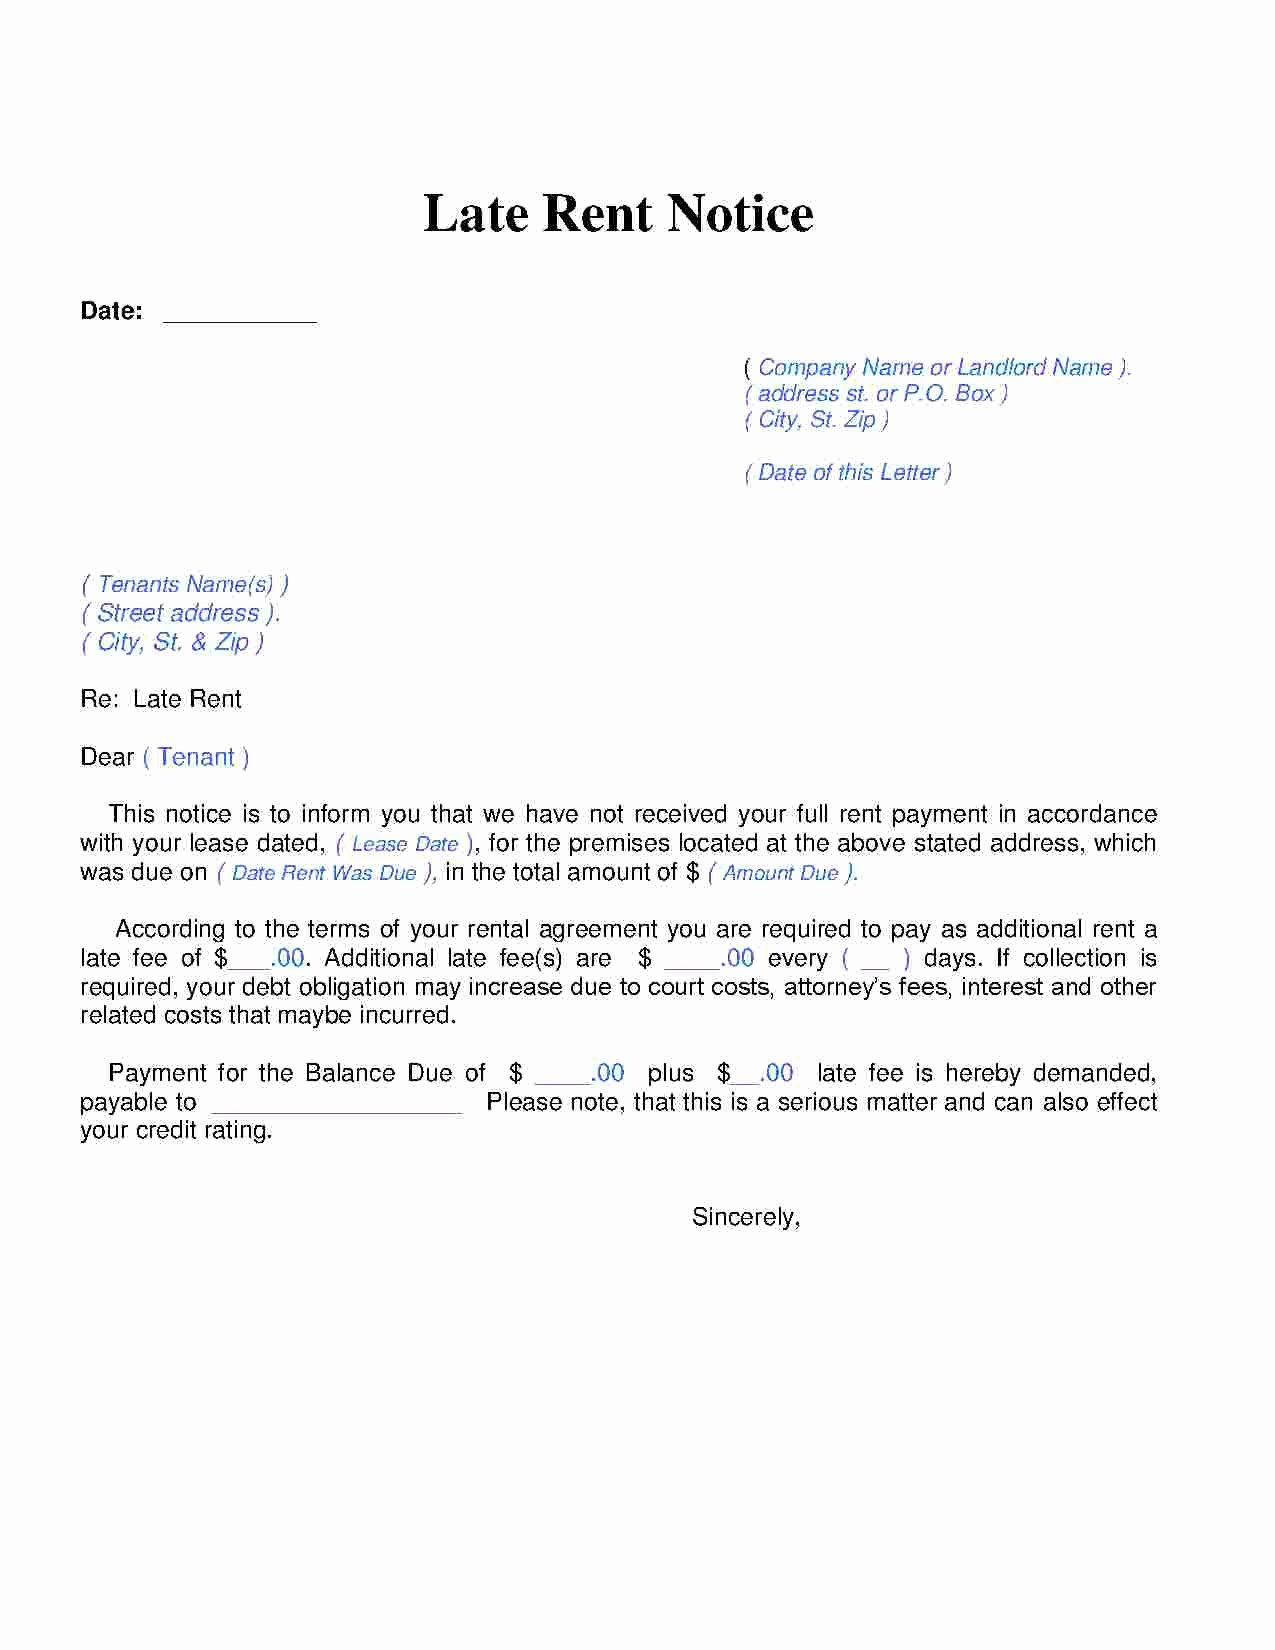 Late Payment Notice Template Awesome Download Late Rent Notice Style 14 Template for Free at